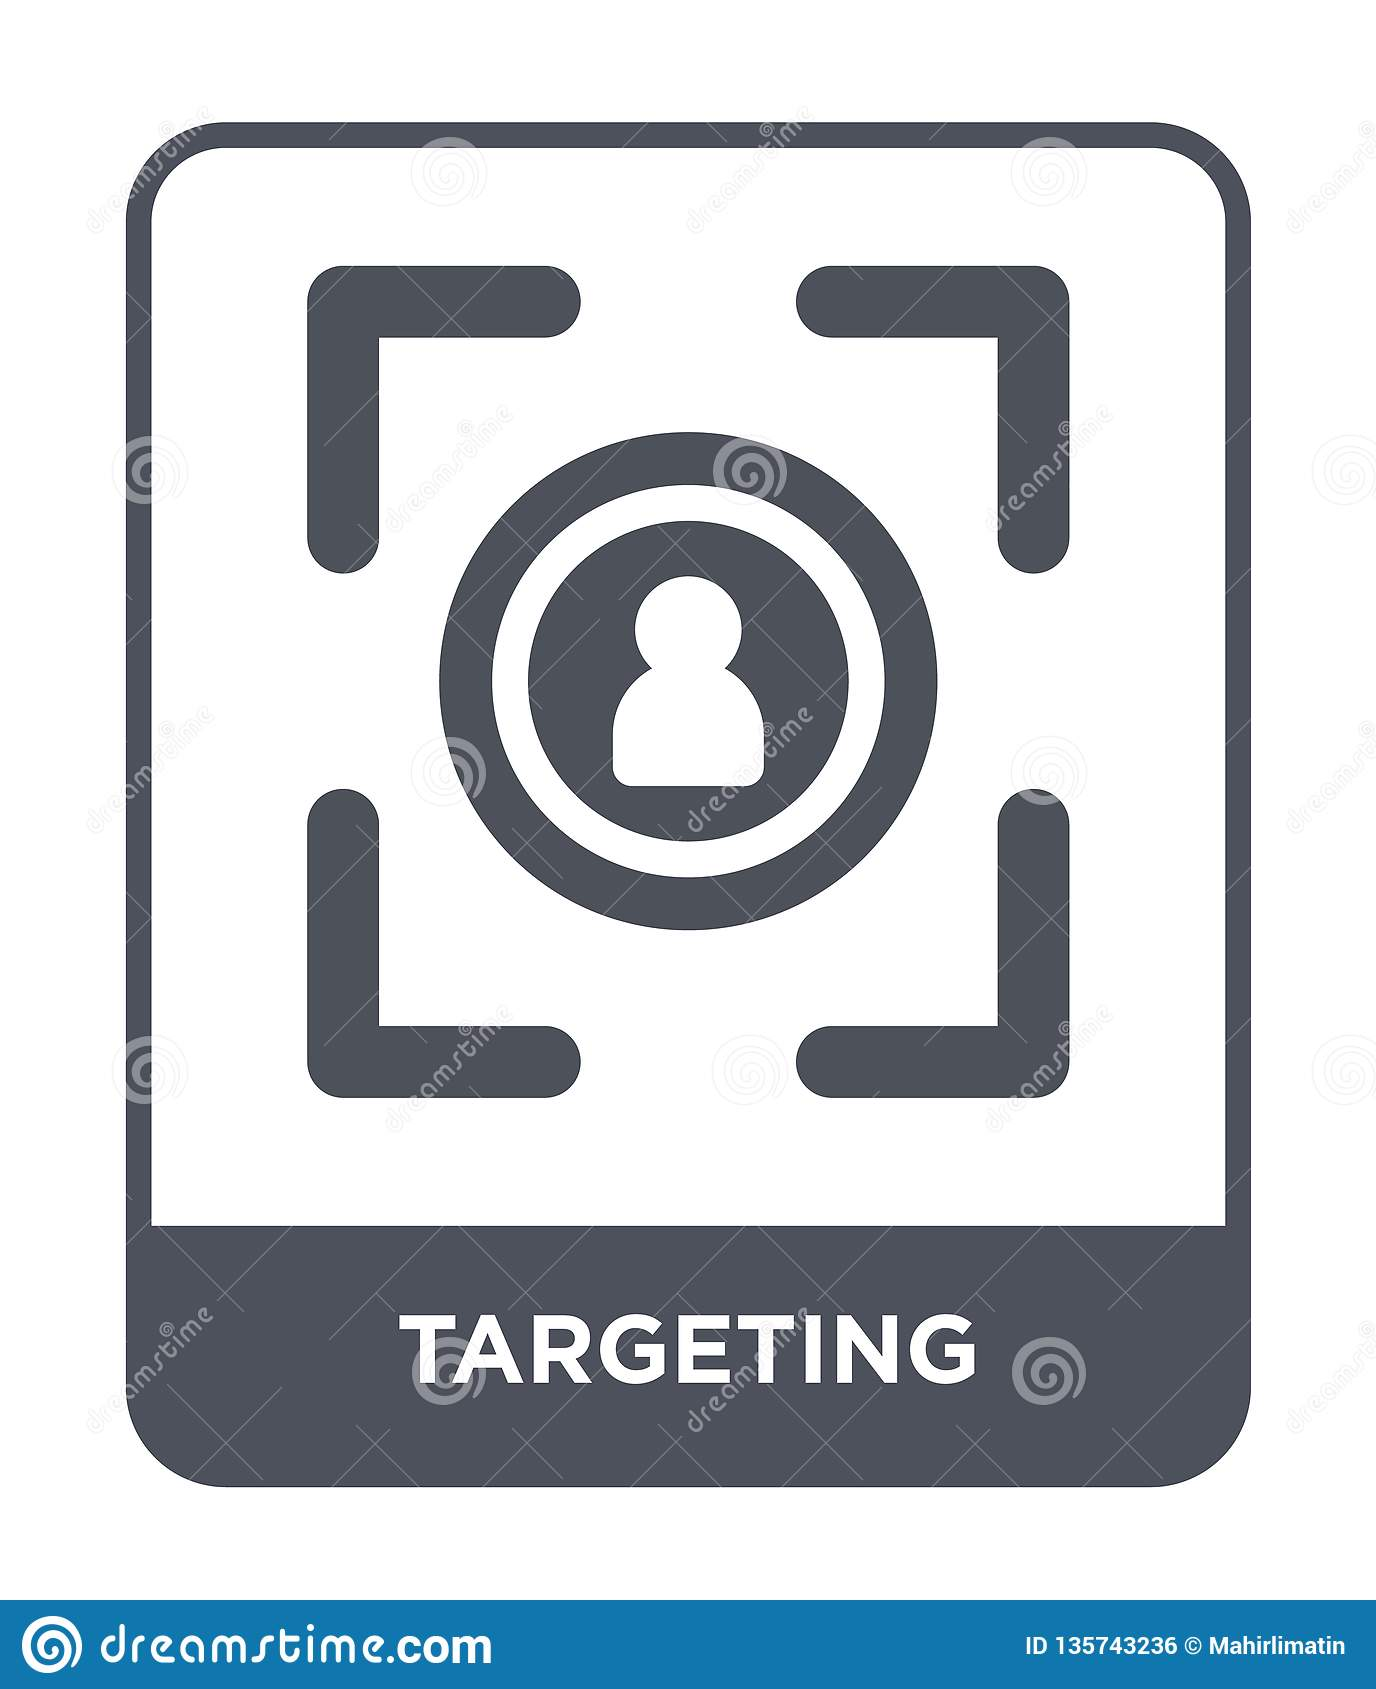 targeting icon in trendy design style. targeting icon isolated on white background. targeting vector icon simple and modern flat